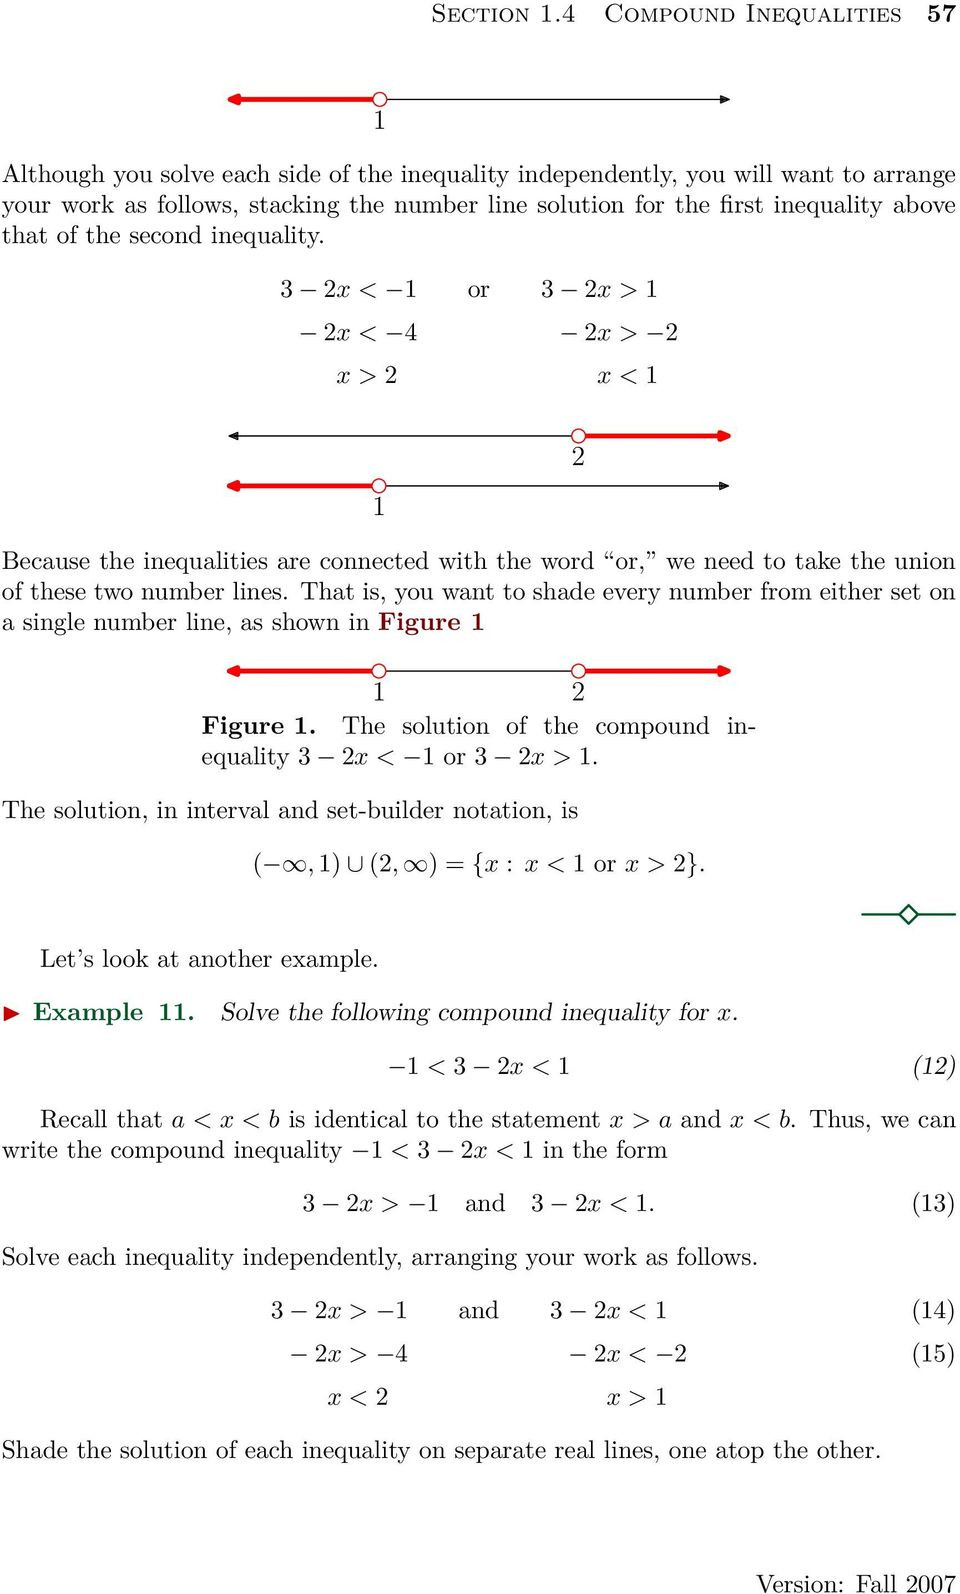 Solving Compound Inequalities Worksheet solving Pound Inequalities Worksheet Answers